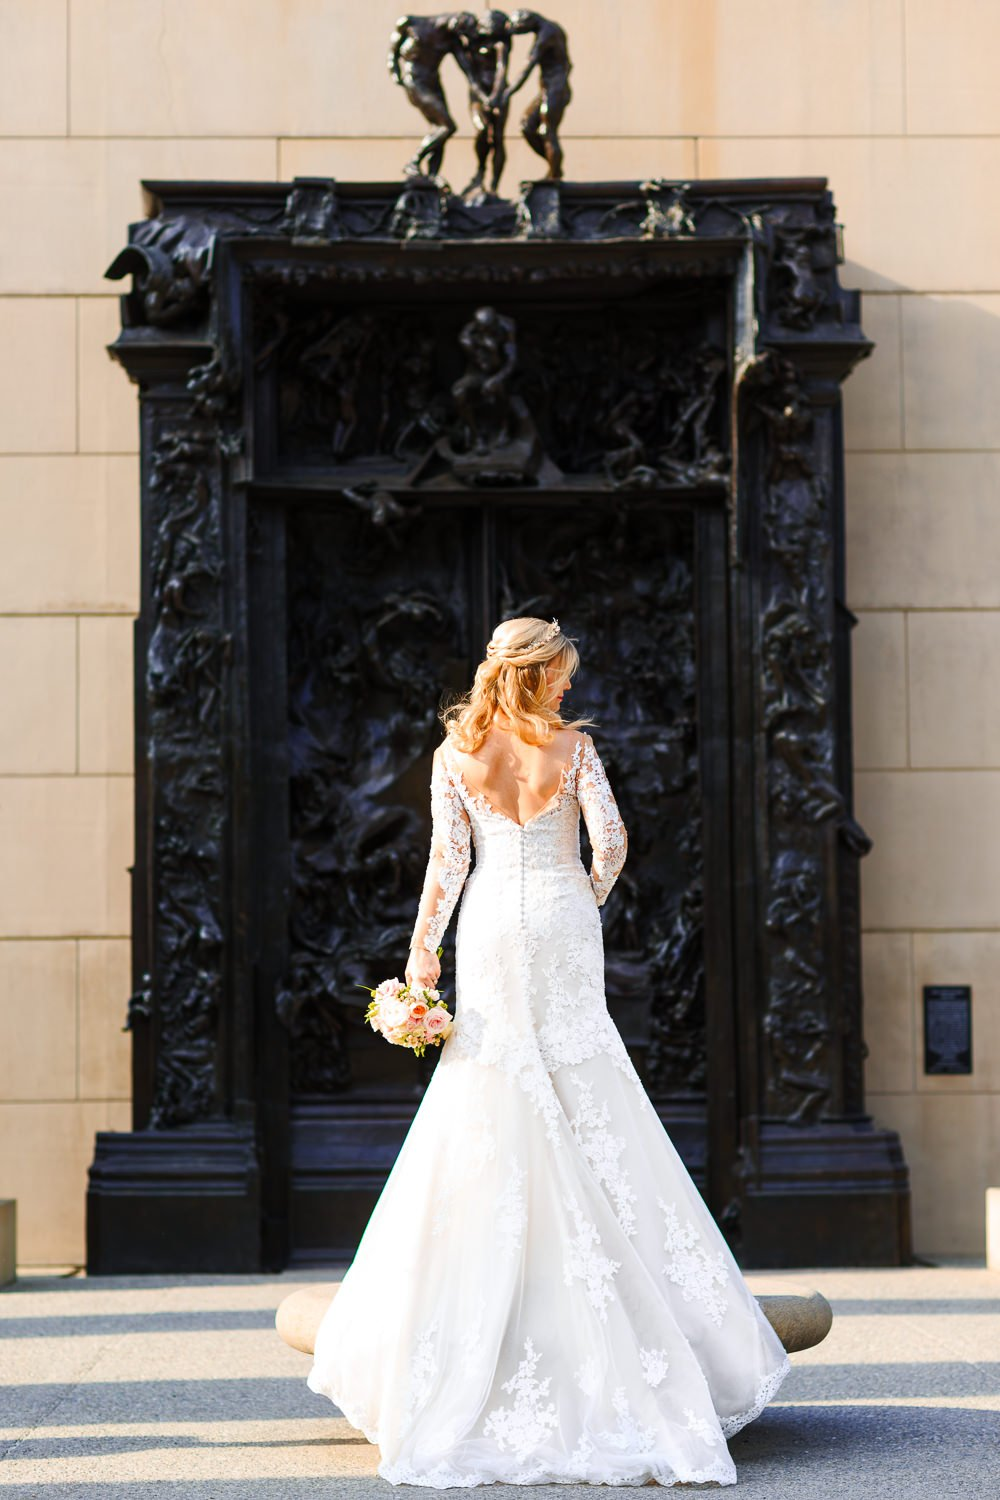 stanford-university-wedding-romantic-portraits-arpit-mehta-san-francisco-photographer-13